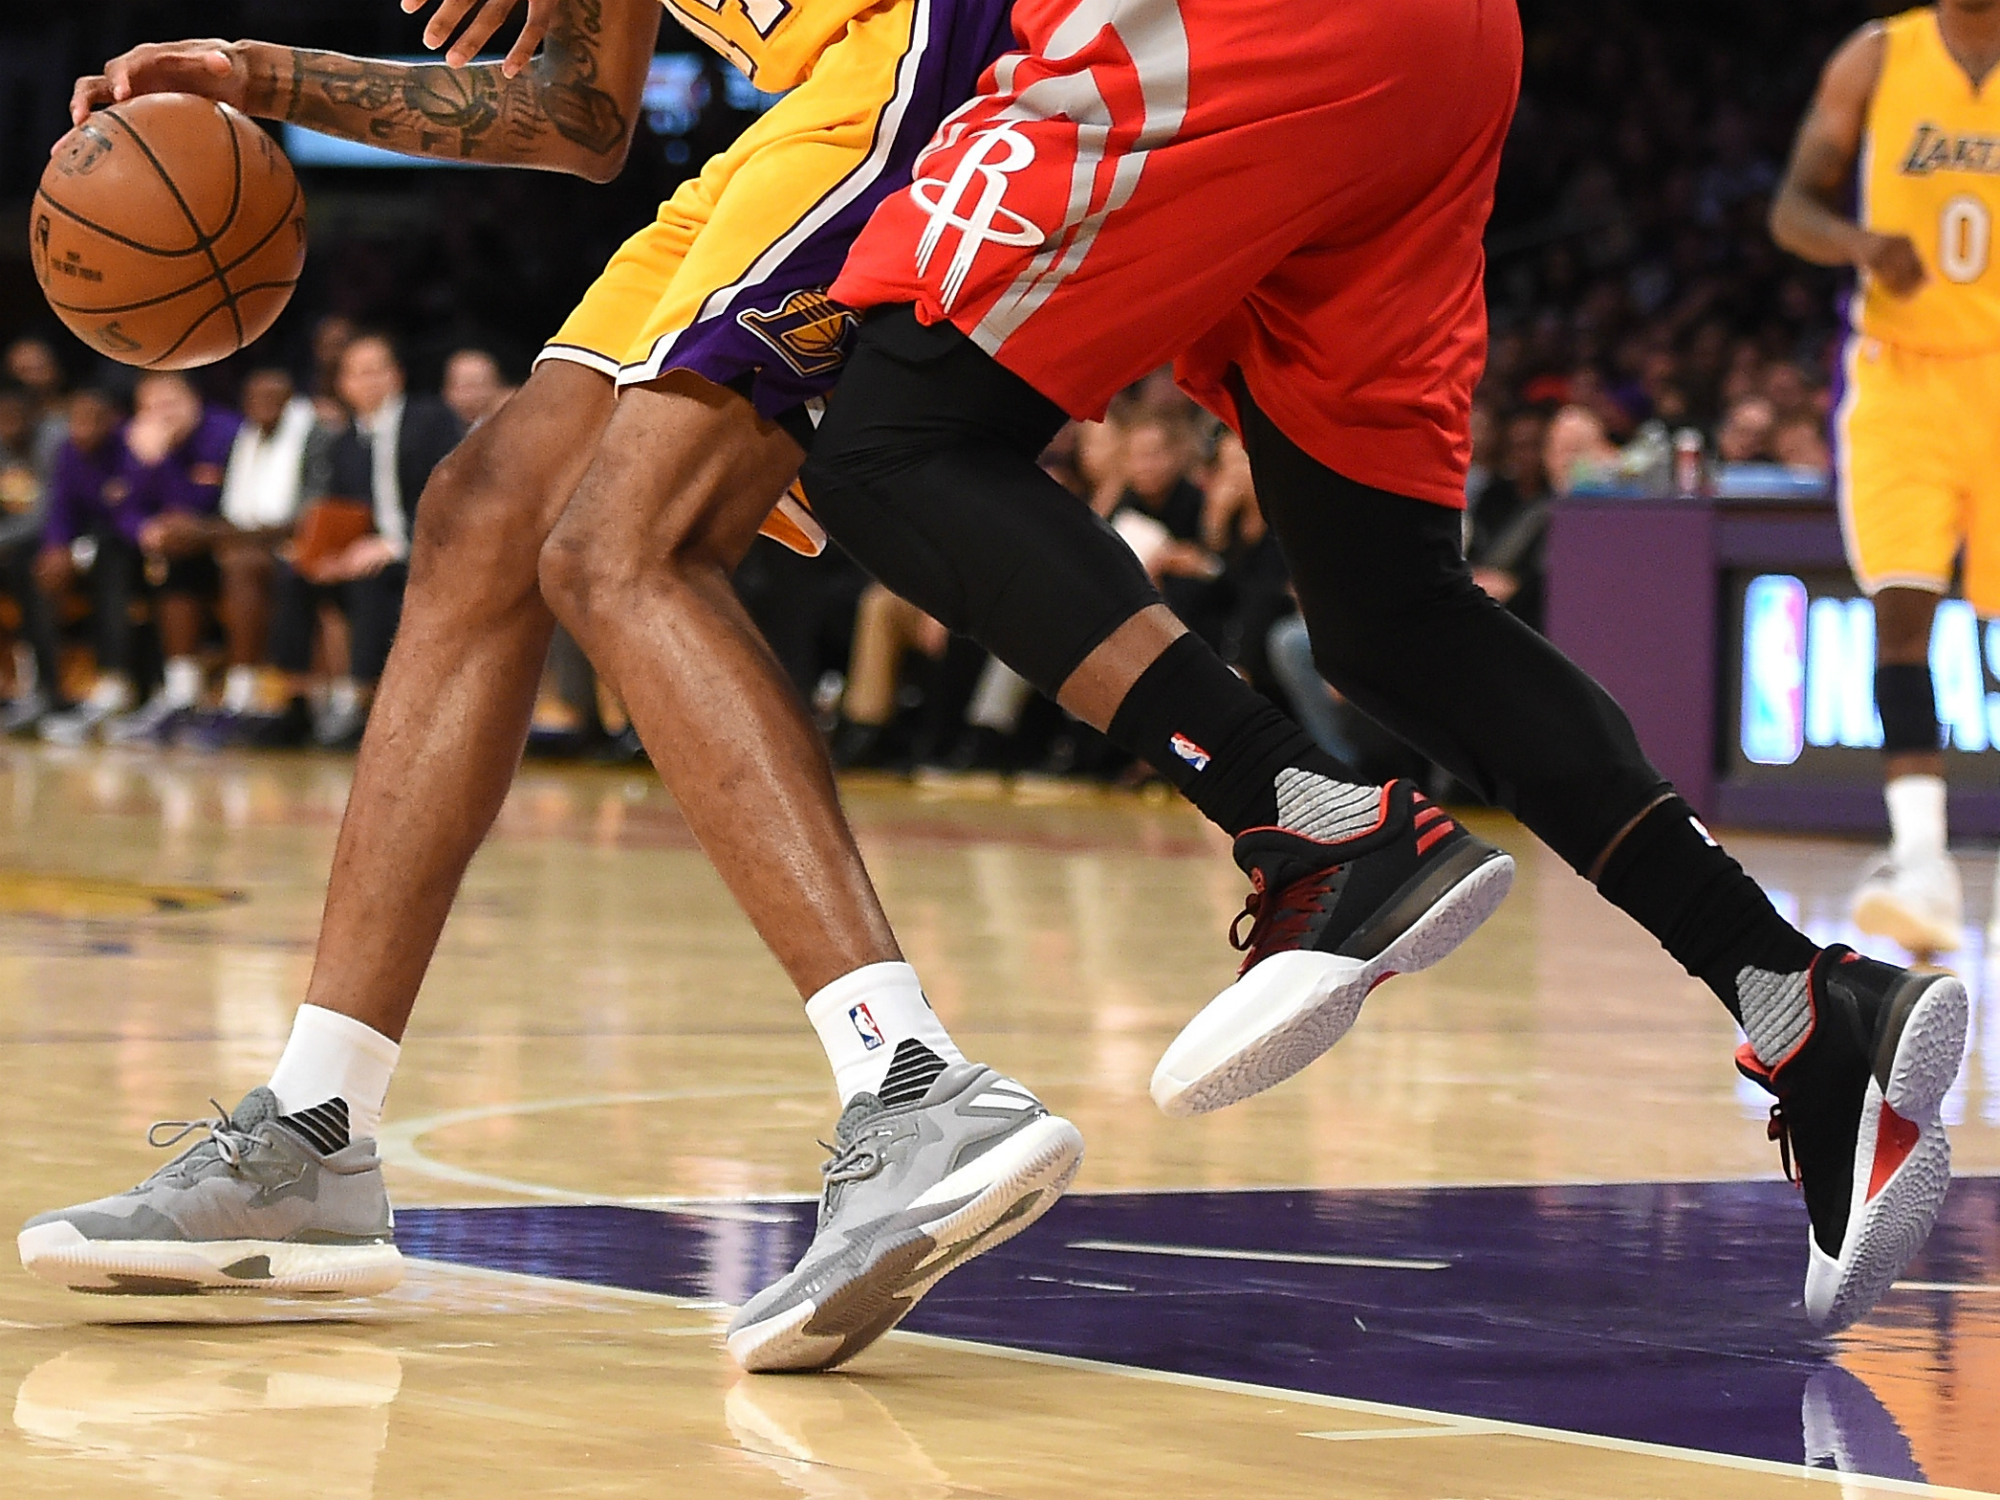 James Harden & Brandon Ingram - adidas Harden Vol. 1, adidas Crazylight Boost 2016